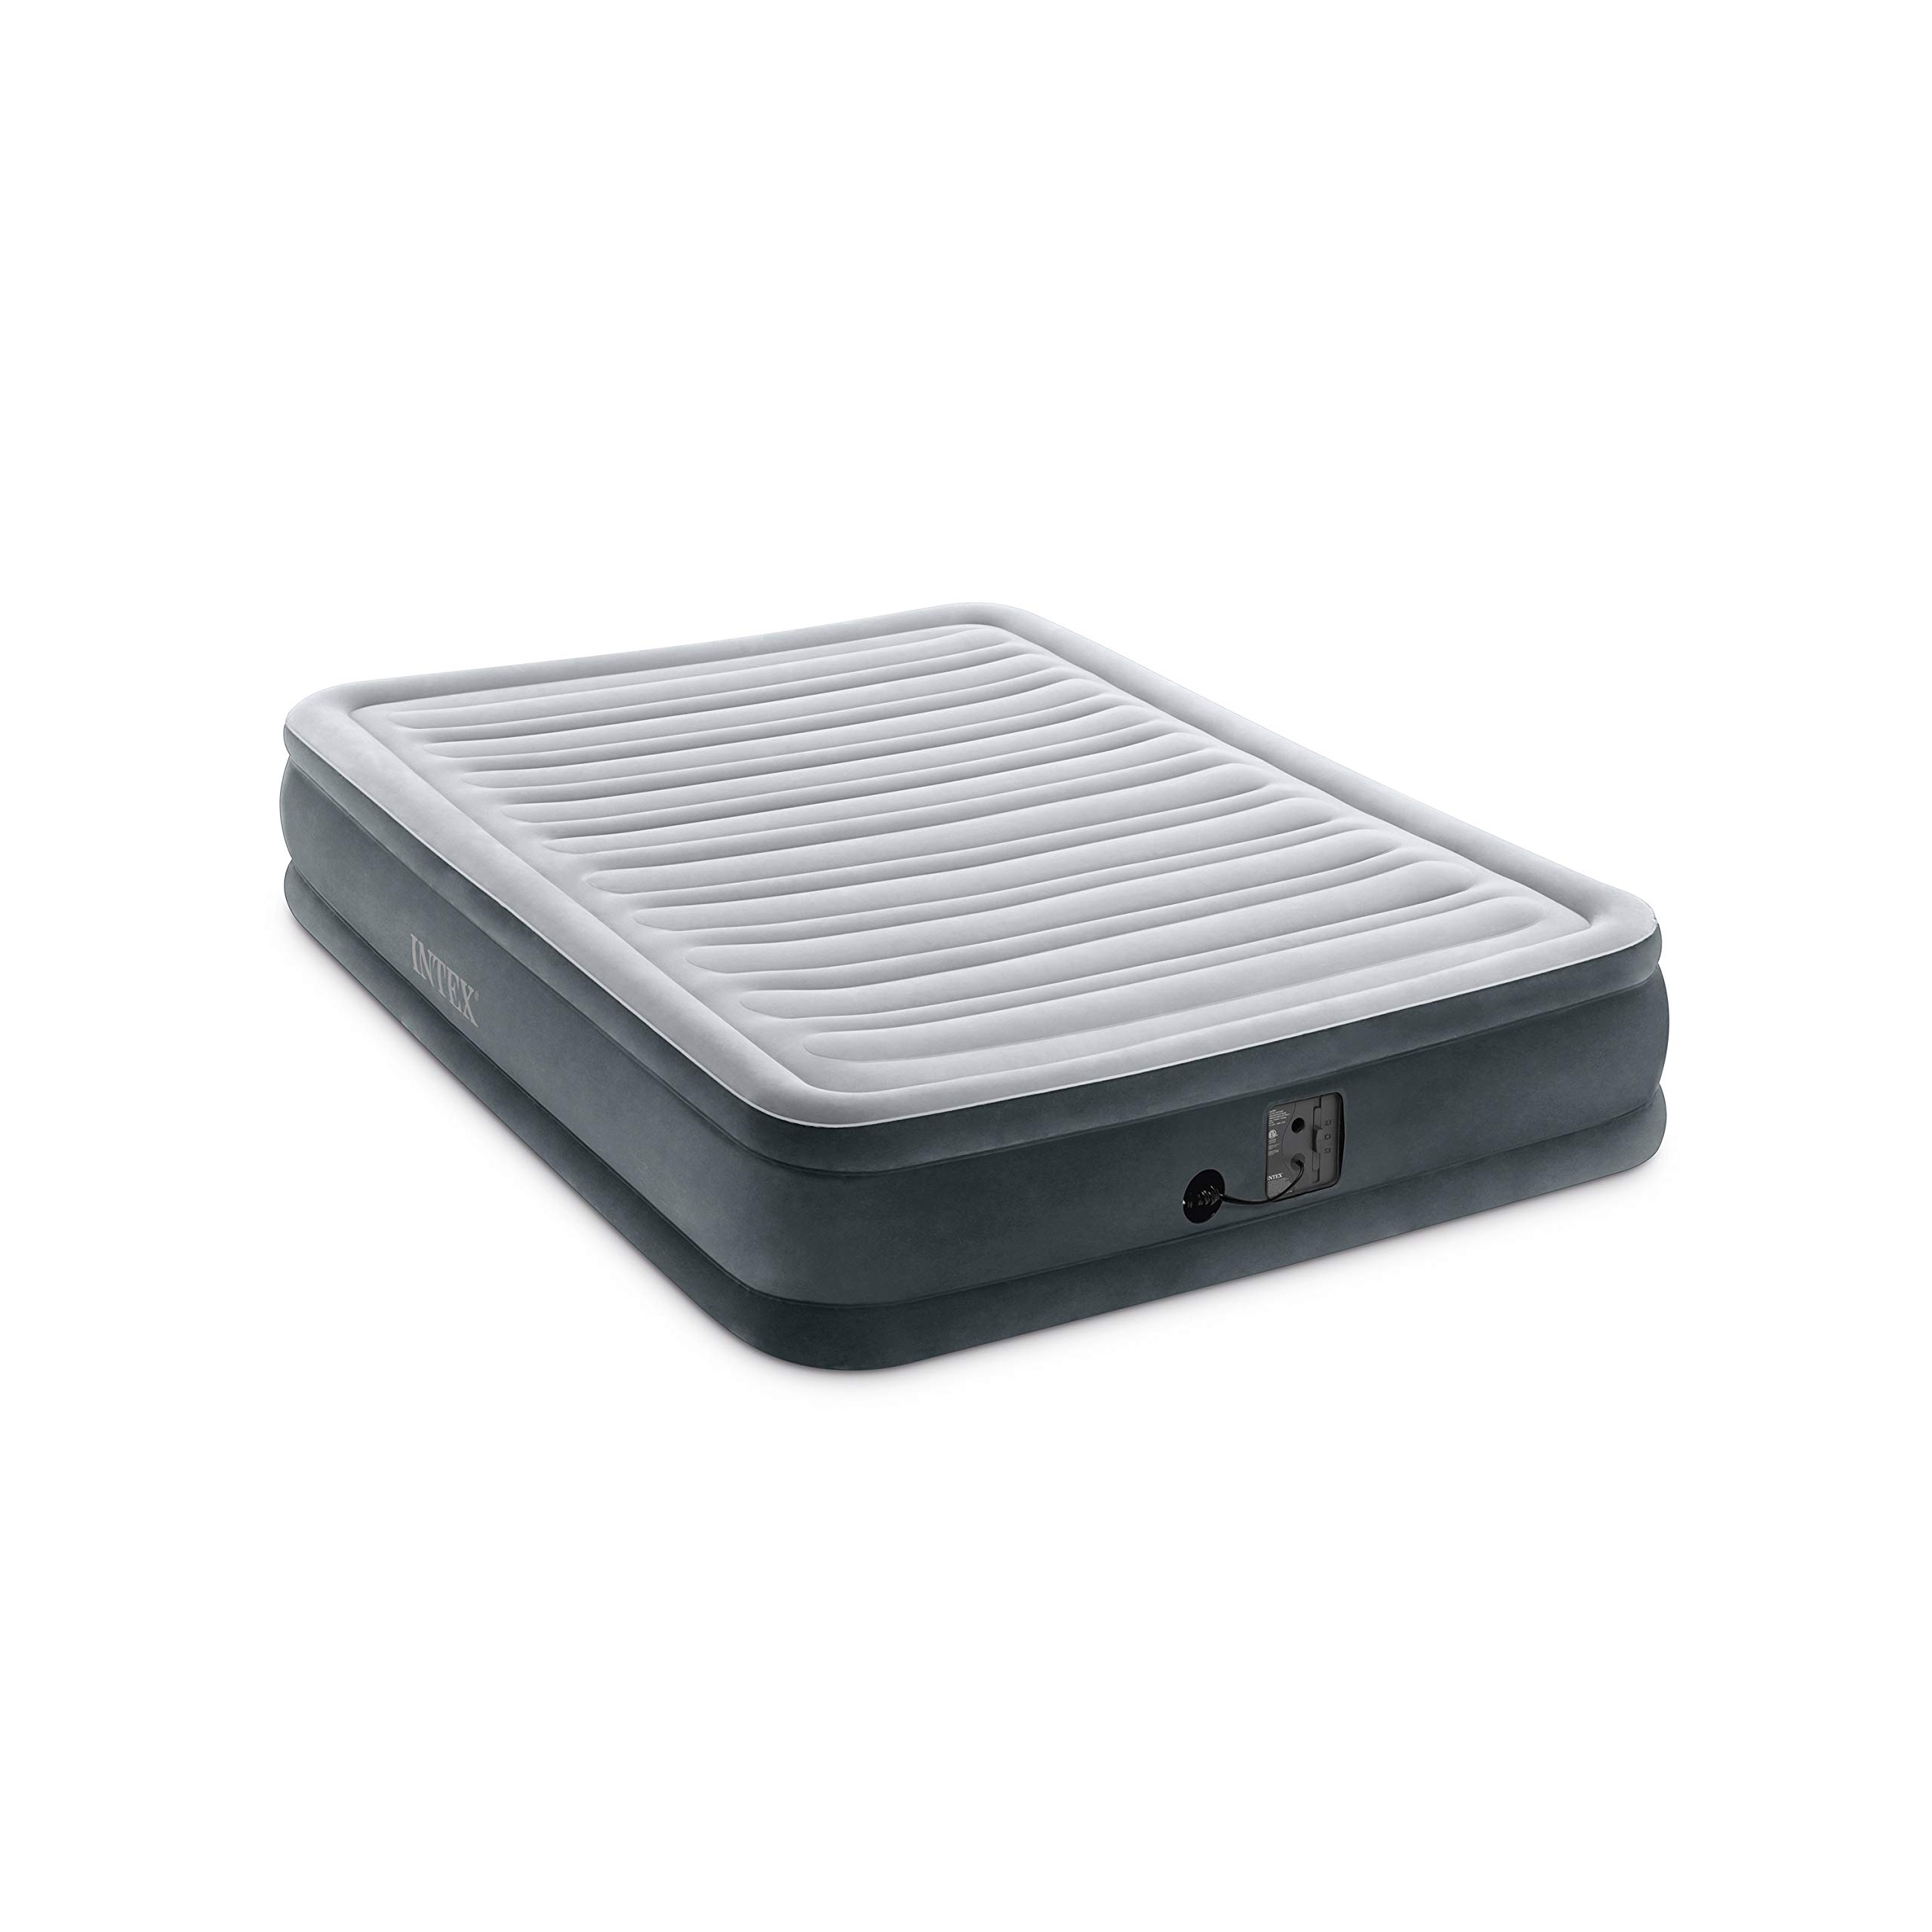 Intex Comfort Plush Mid Rise Dura-Beam Airbed with Internal Electric Pump, Bed Height 13'', Full